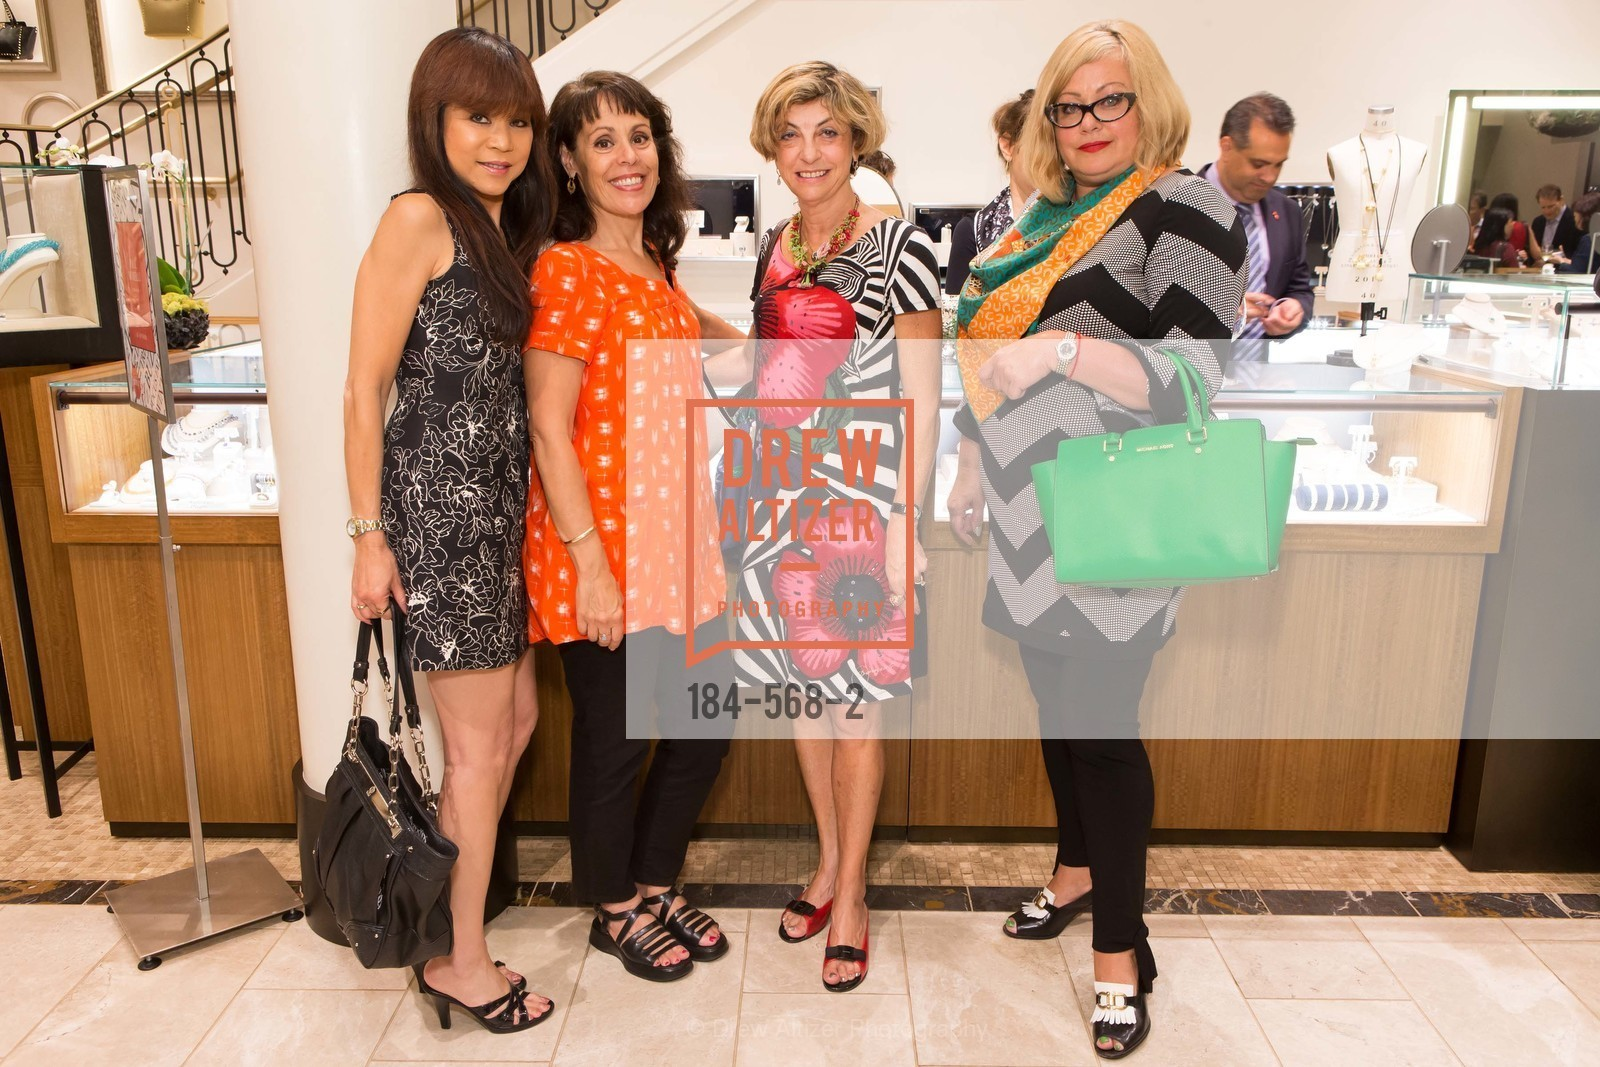 Diane Tong, Nancy Morais, Ludmila Eggleton, Irina Nudelman, SOTHEBY'S  Hosts a Private Viewing of Highlights from the Collection of MRS. PAUL MELLON, US, September 17th, 2014,Drew Altizer, Drew Altizer Photography, full-service agency, private events, San Francisco photographer, photographer california